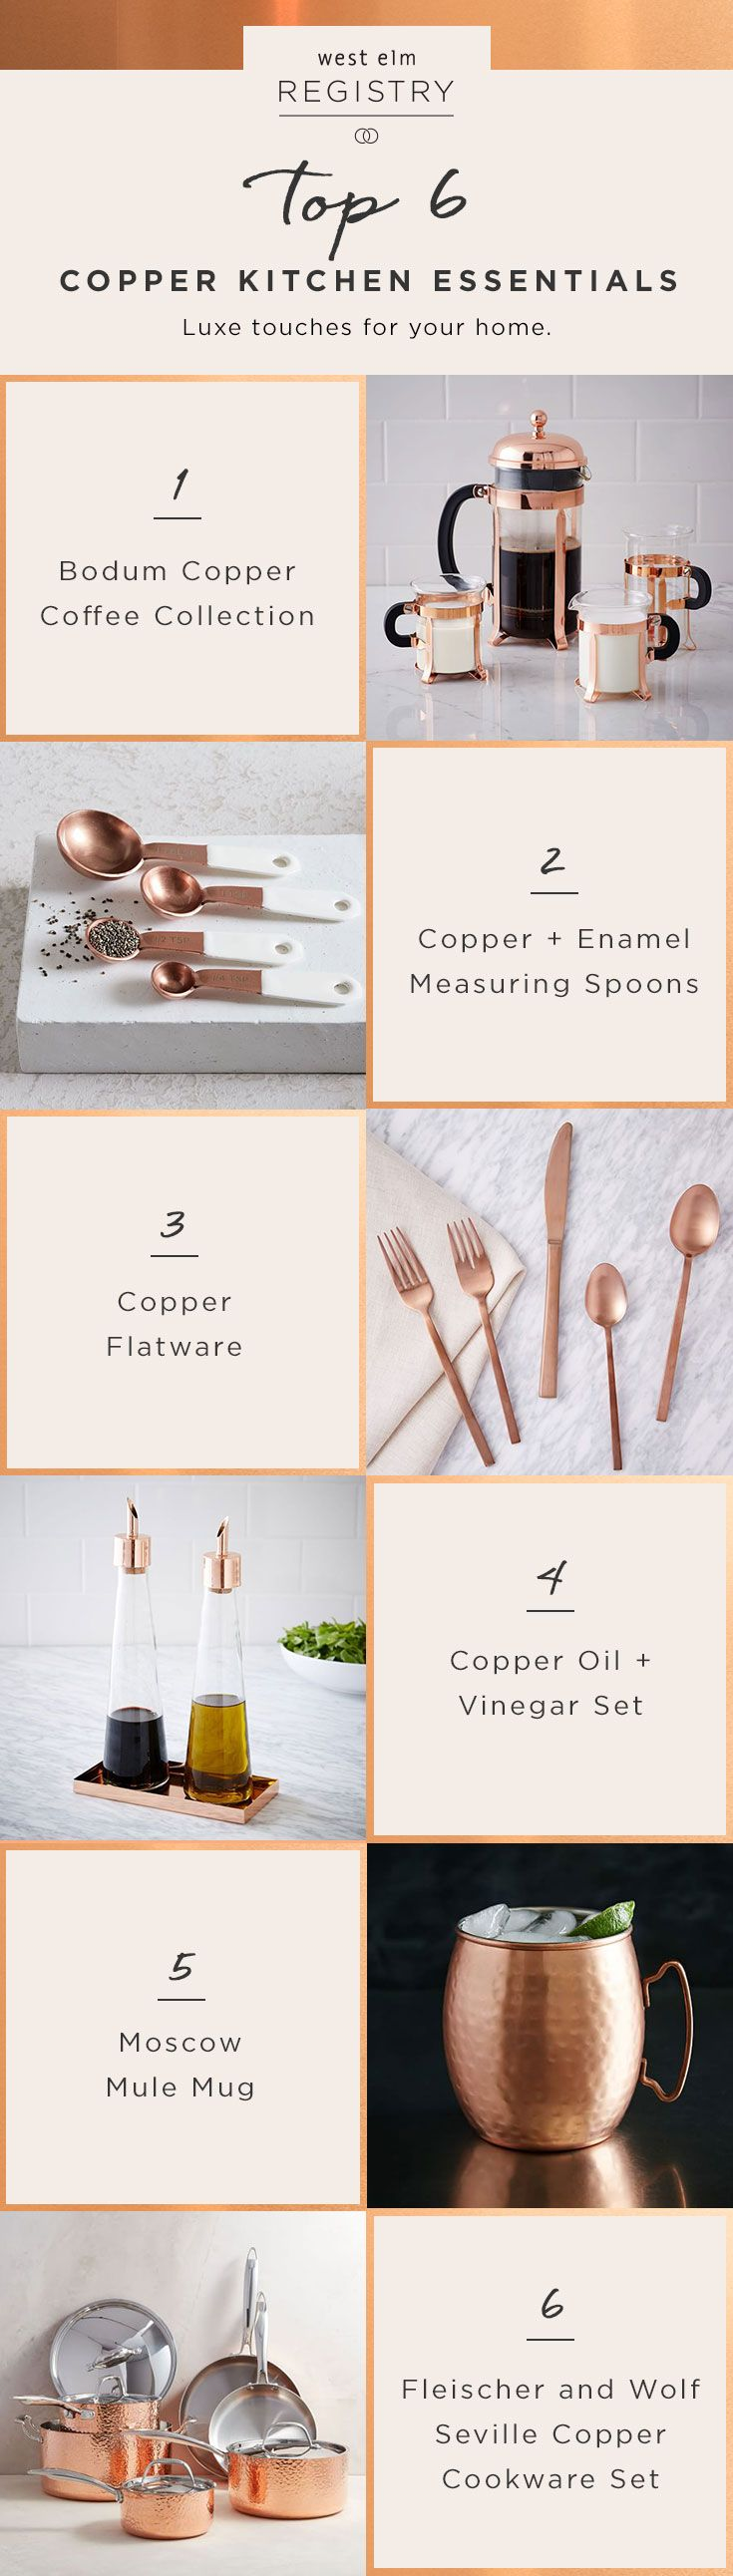 We've rounded up 6 copper kitchen essentials that should be on everyone's wedding registry! Ready to start yours? Head over to westelm.com to create your registry now!